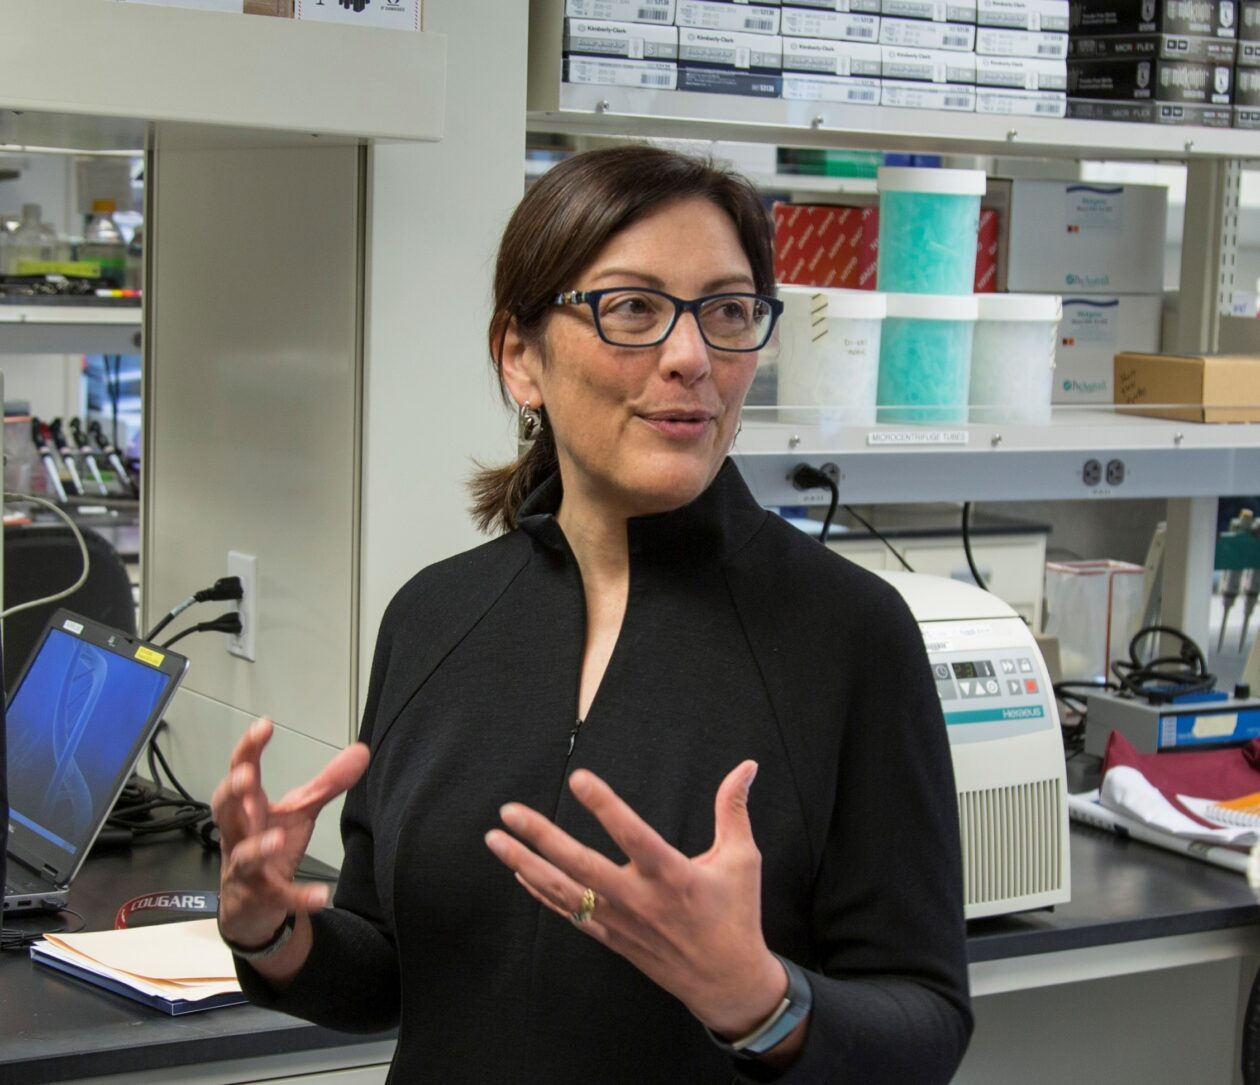 Rep. DelBene and other lawmakers voice privacy concerns over virus-tracking plans